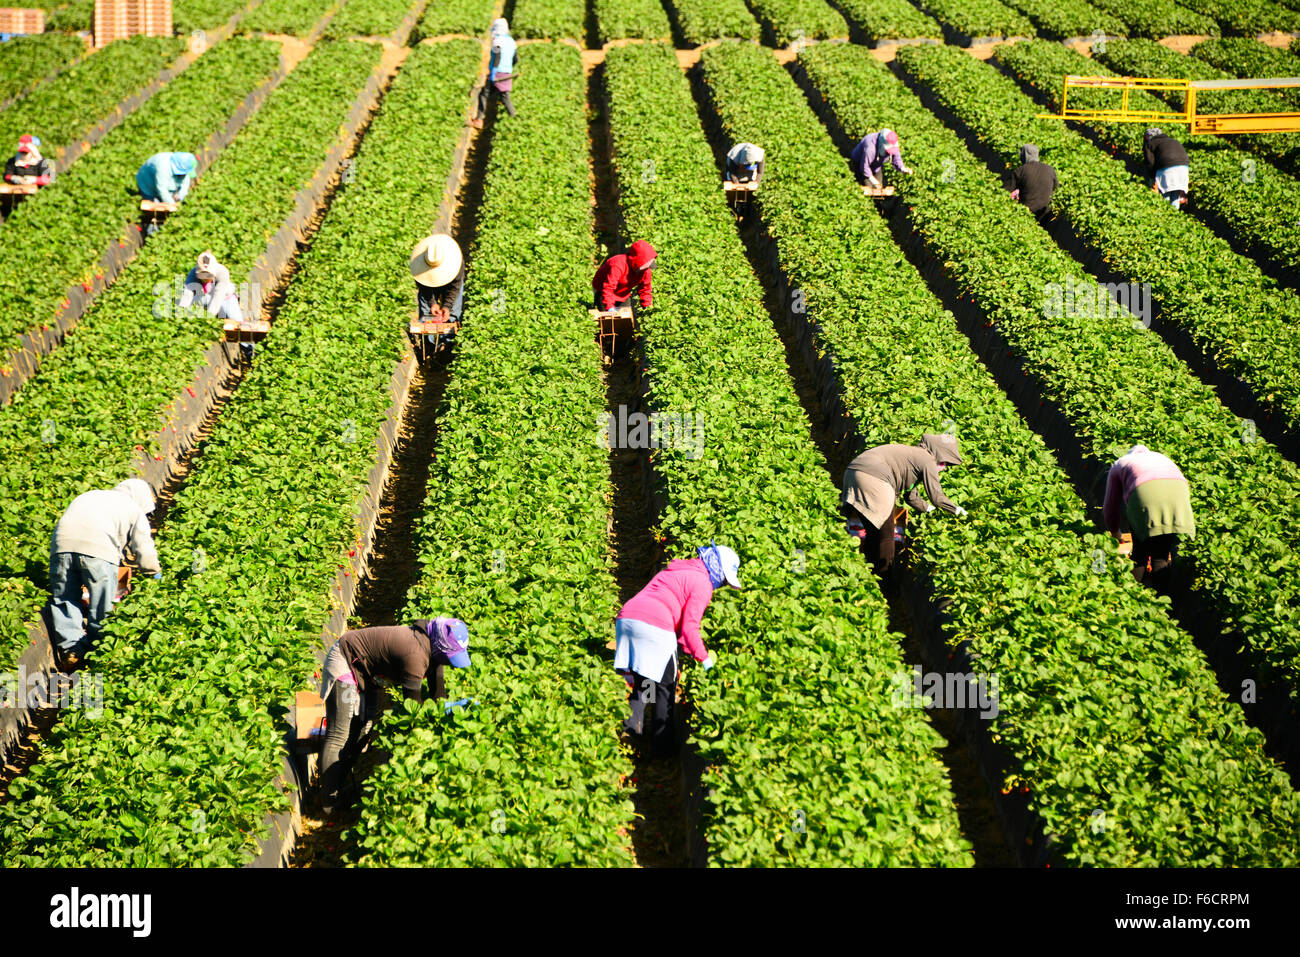 Mexican migrant workers pick strawberries in strawberry fields near Ventura in Central California USA - Stock Image